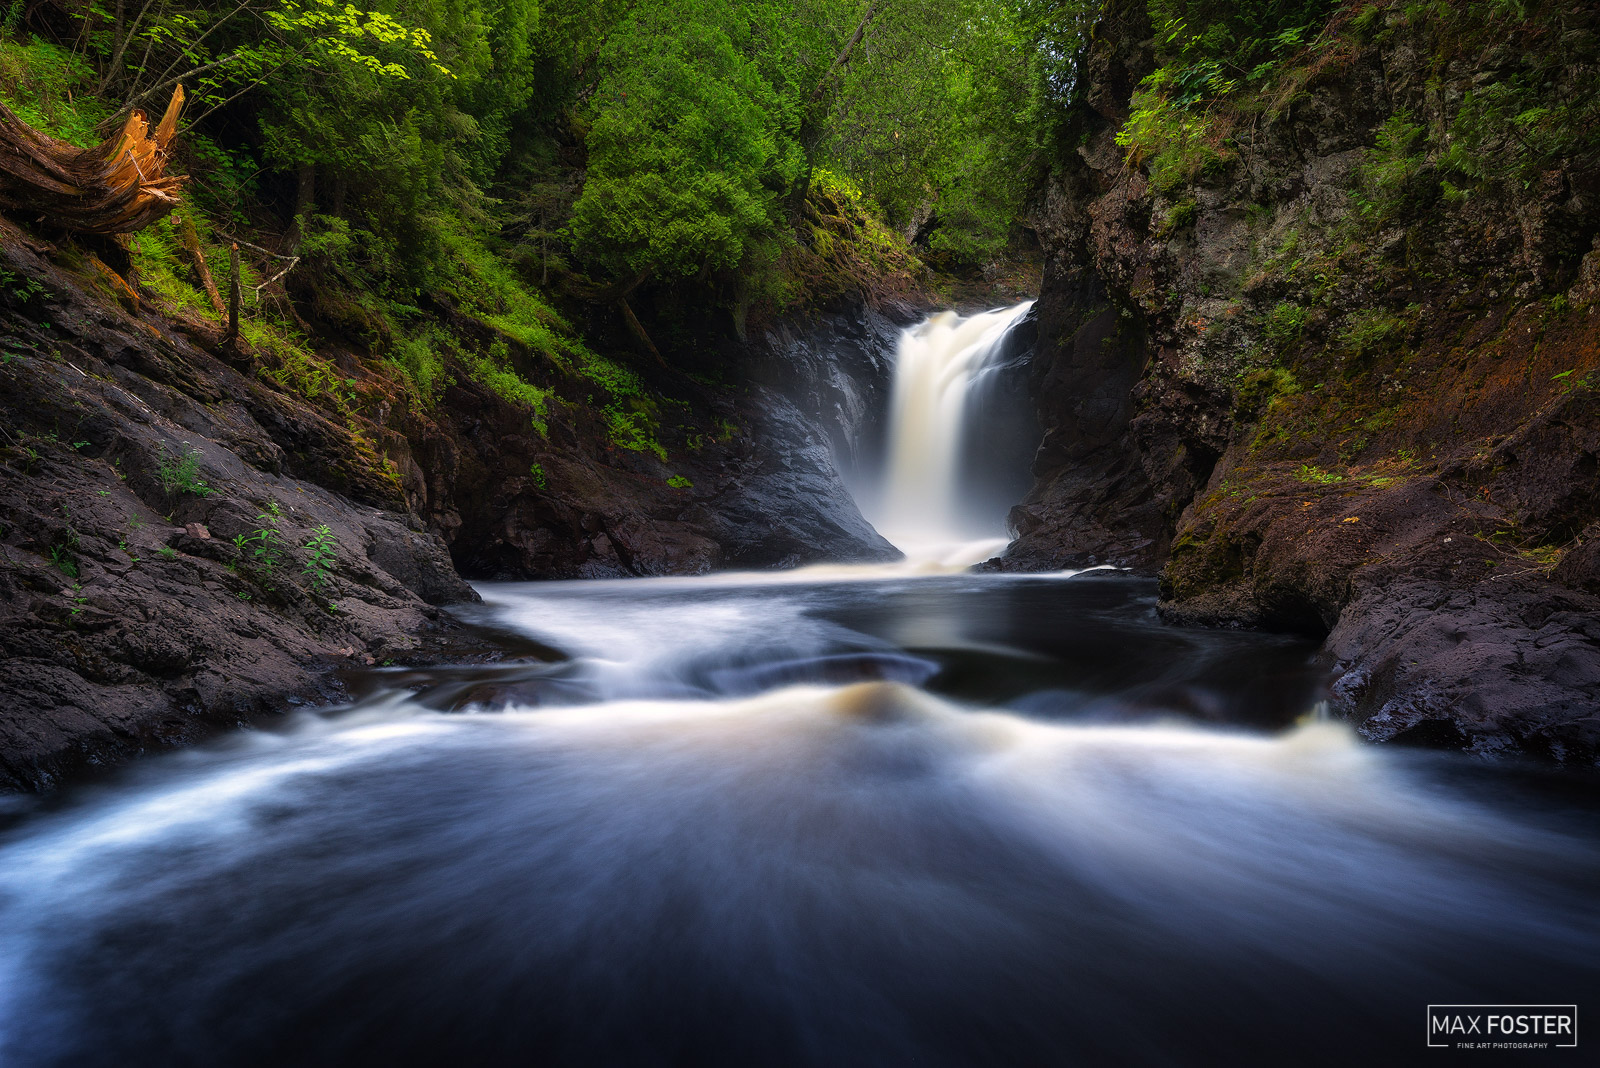 Fine Art Limited Edition of 50 The Cascade River is a 17.1-mile-long (27.5 km) river in northeastern Minnesota, United States...